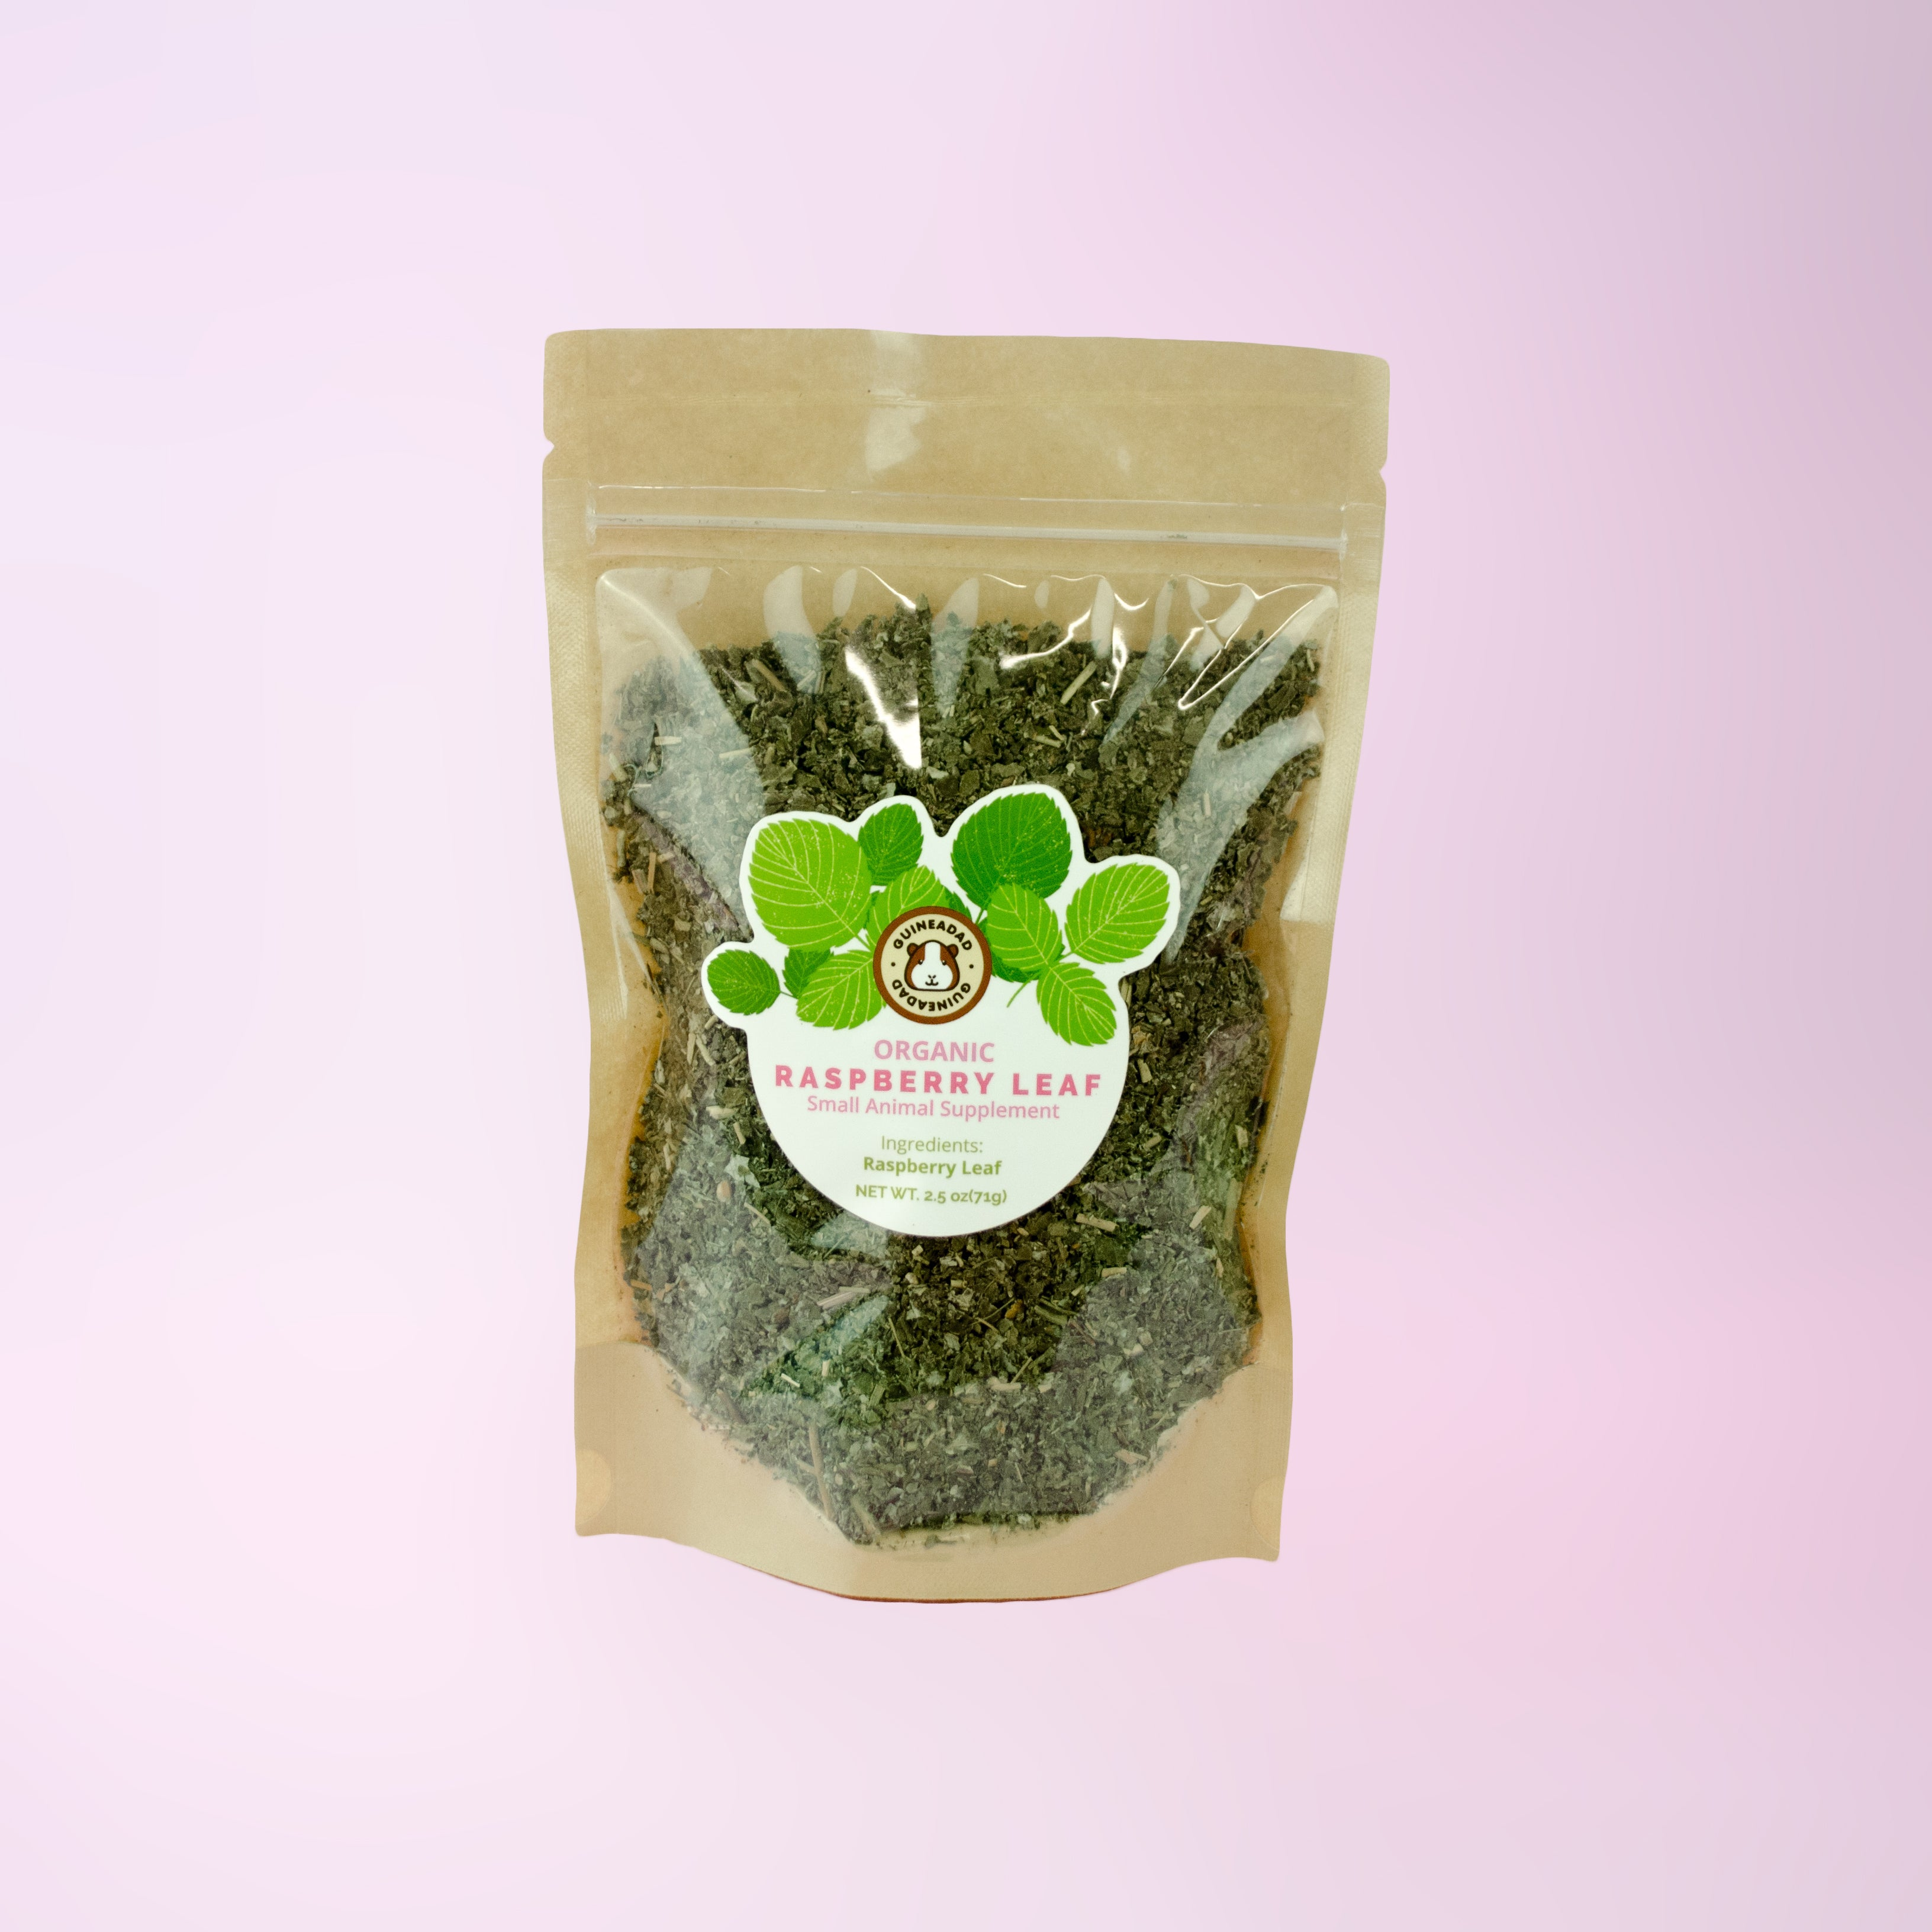 raspberry leaf herbal treat for small animals